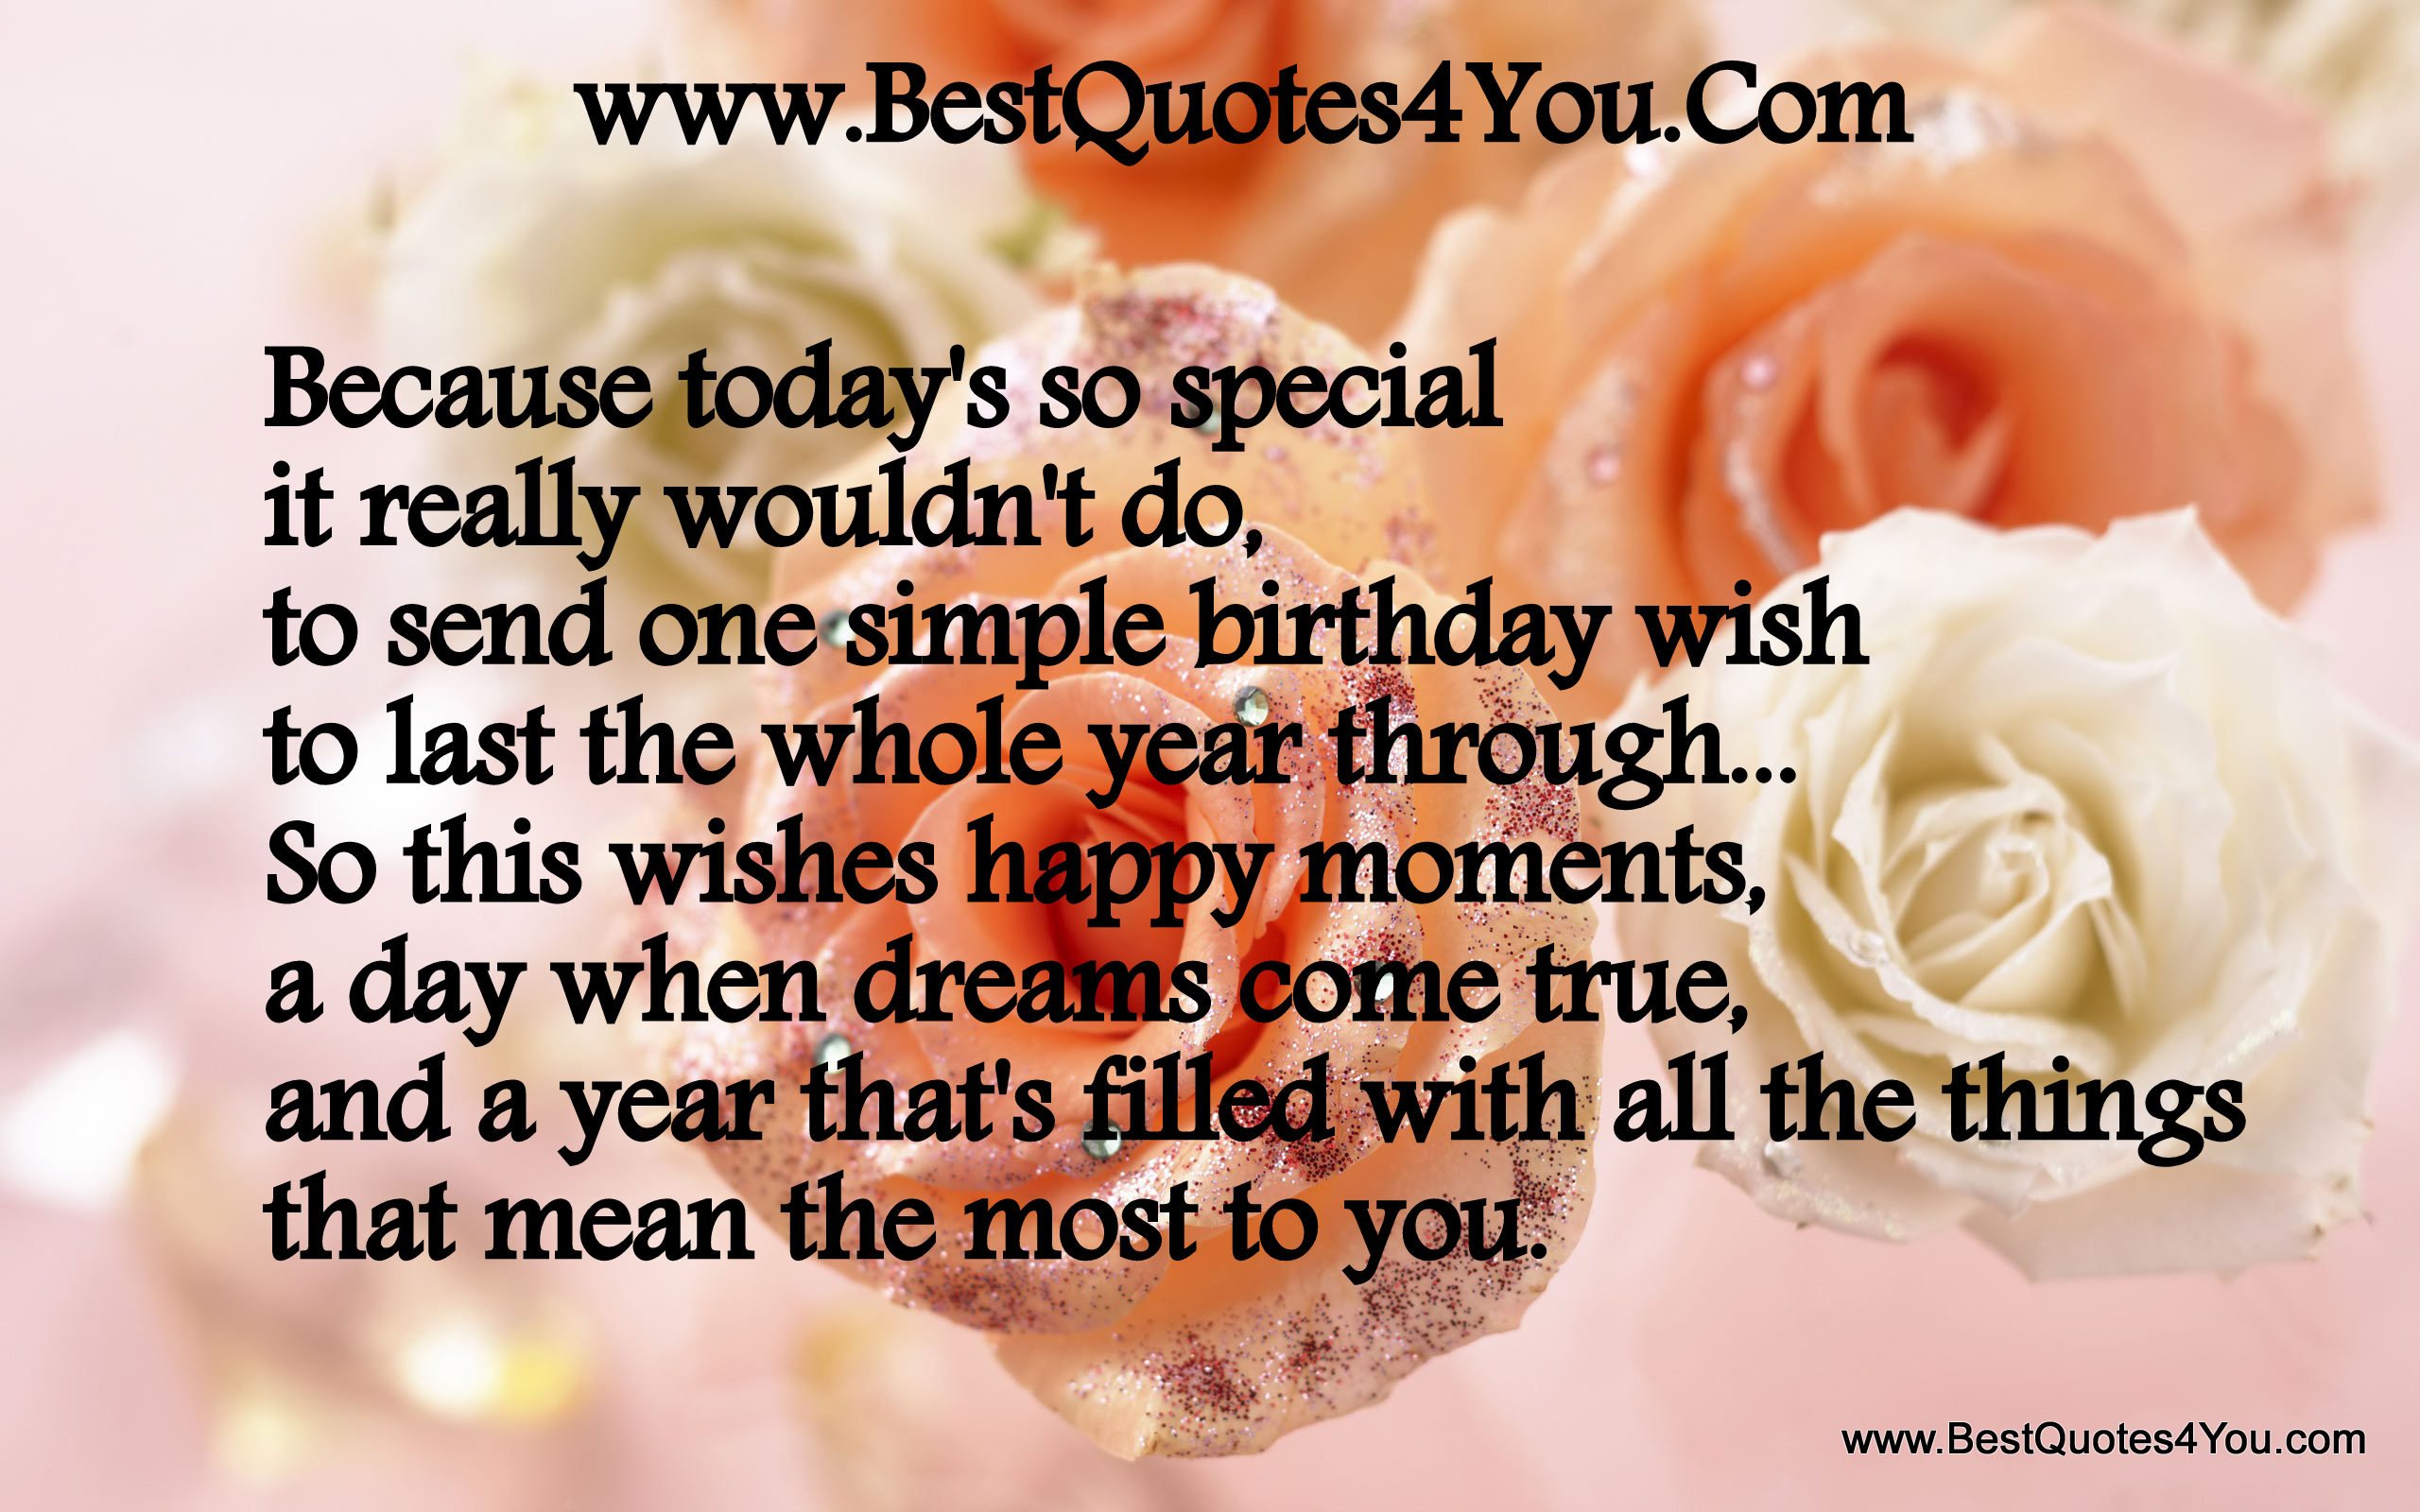 Birthday quotes for 30th birthday